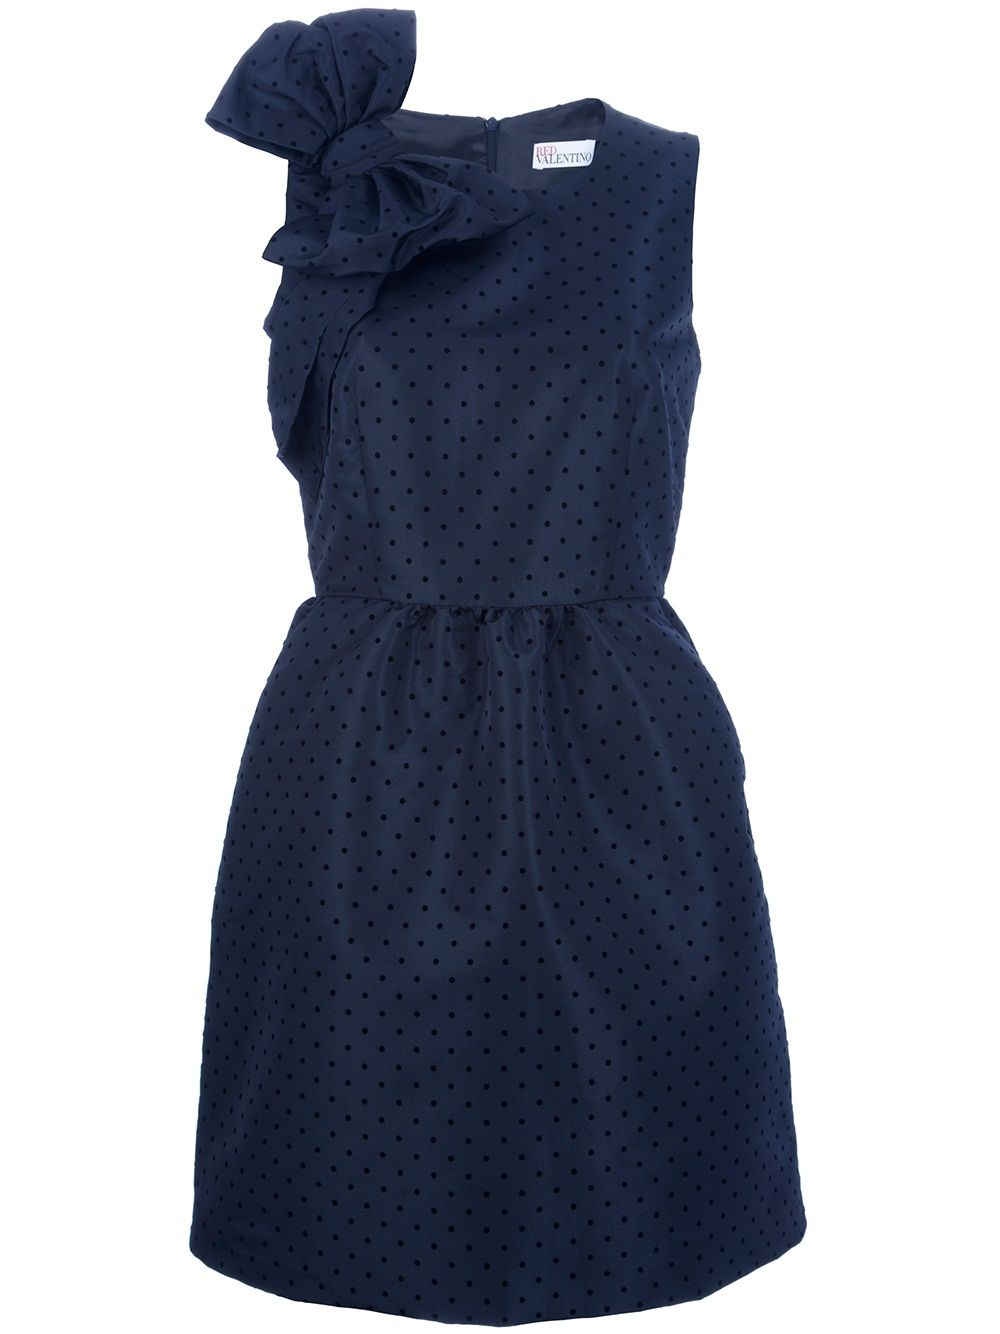 Perfection navy valentino dress with polka dots and a big bow on